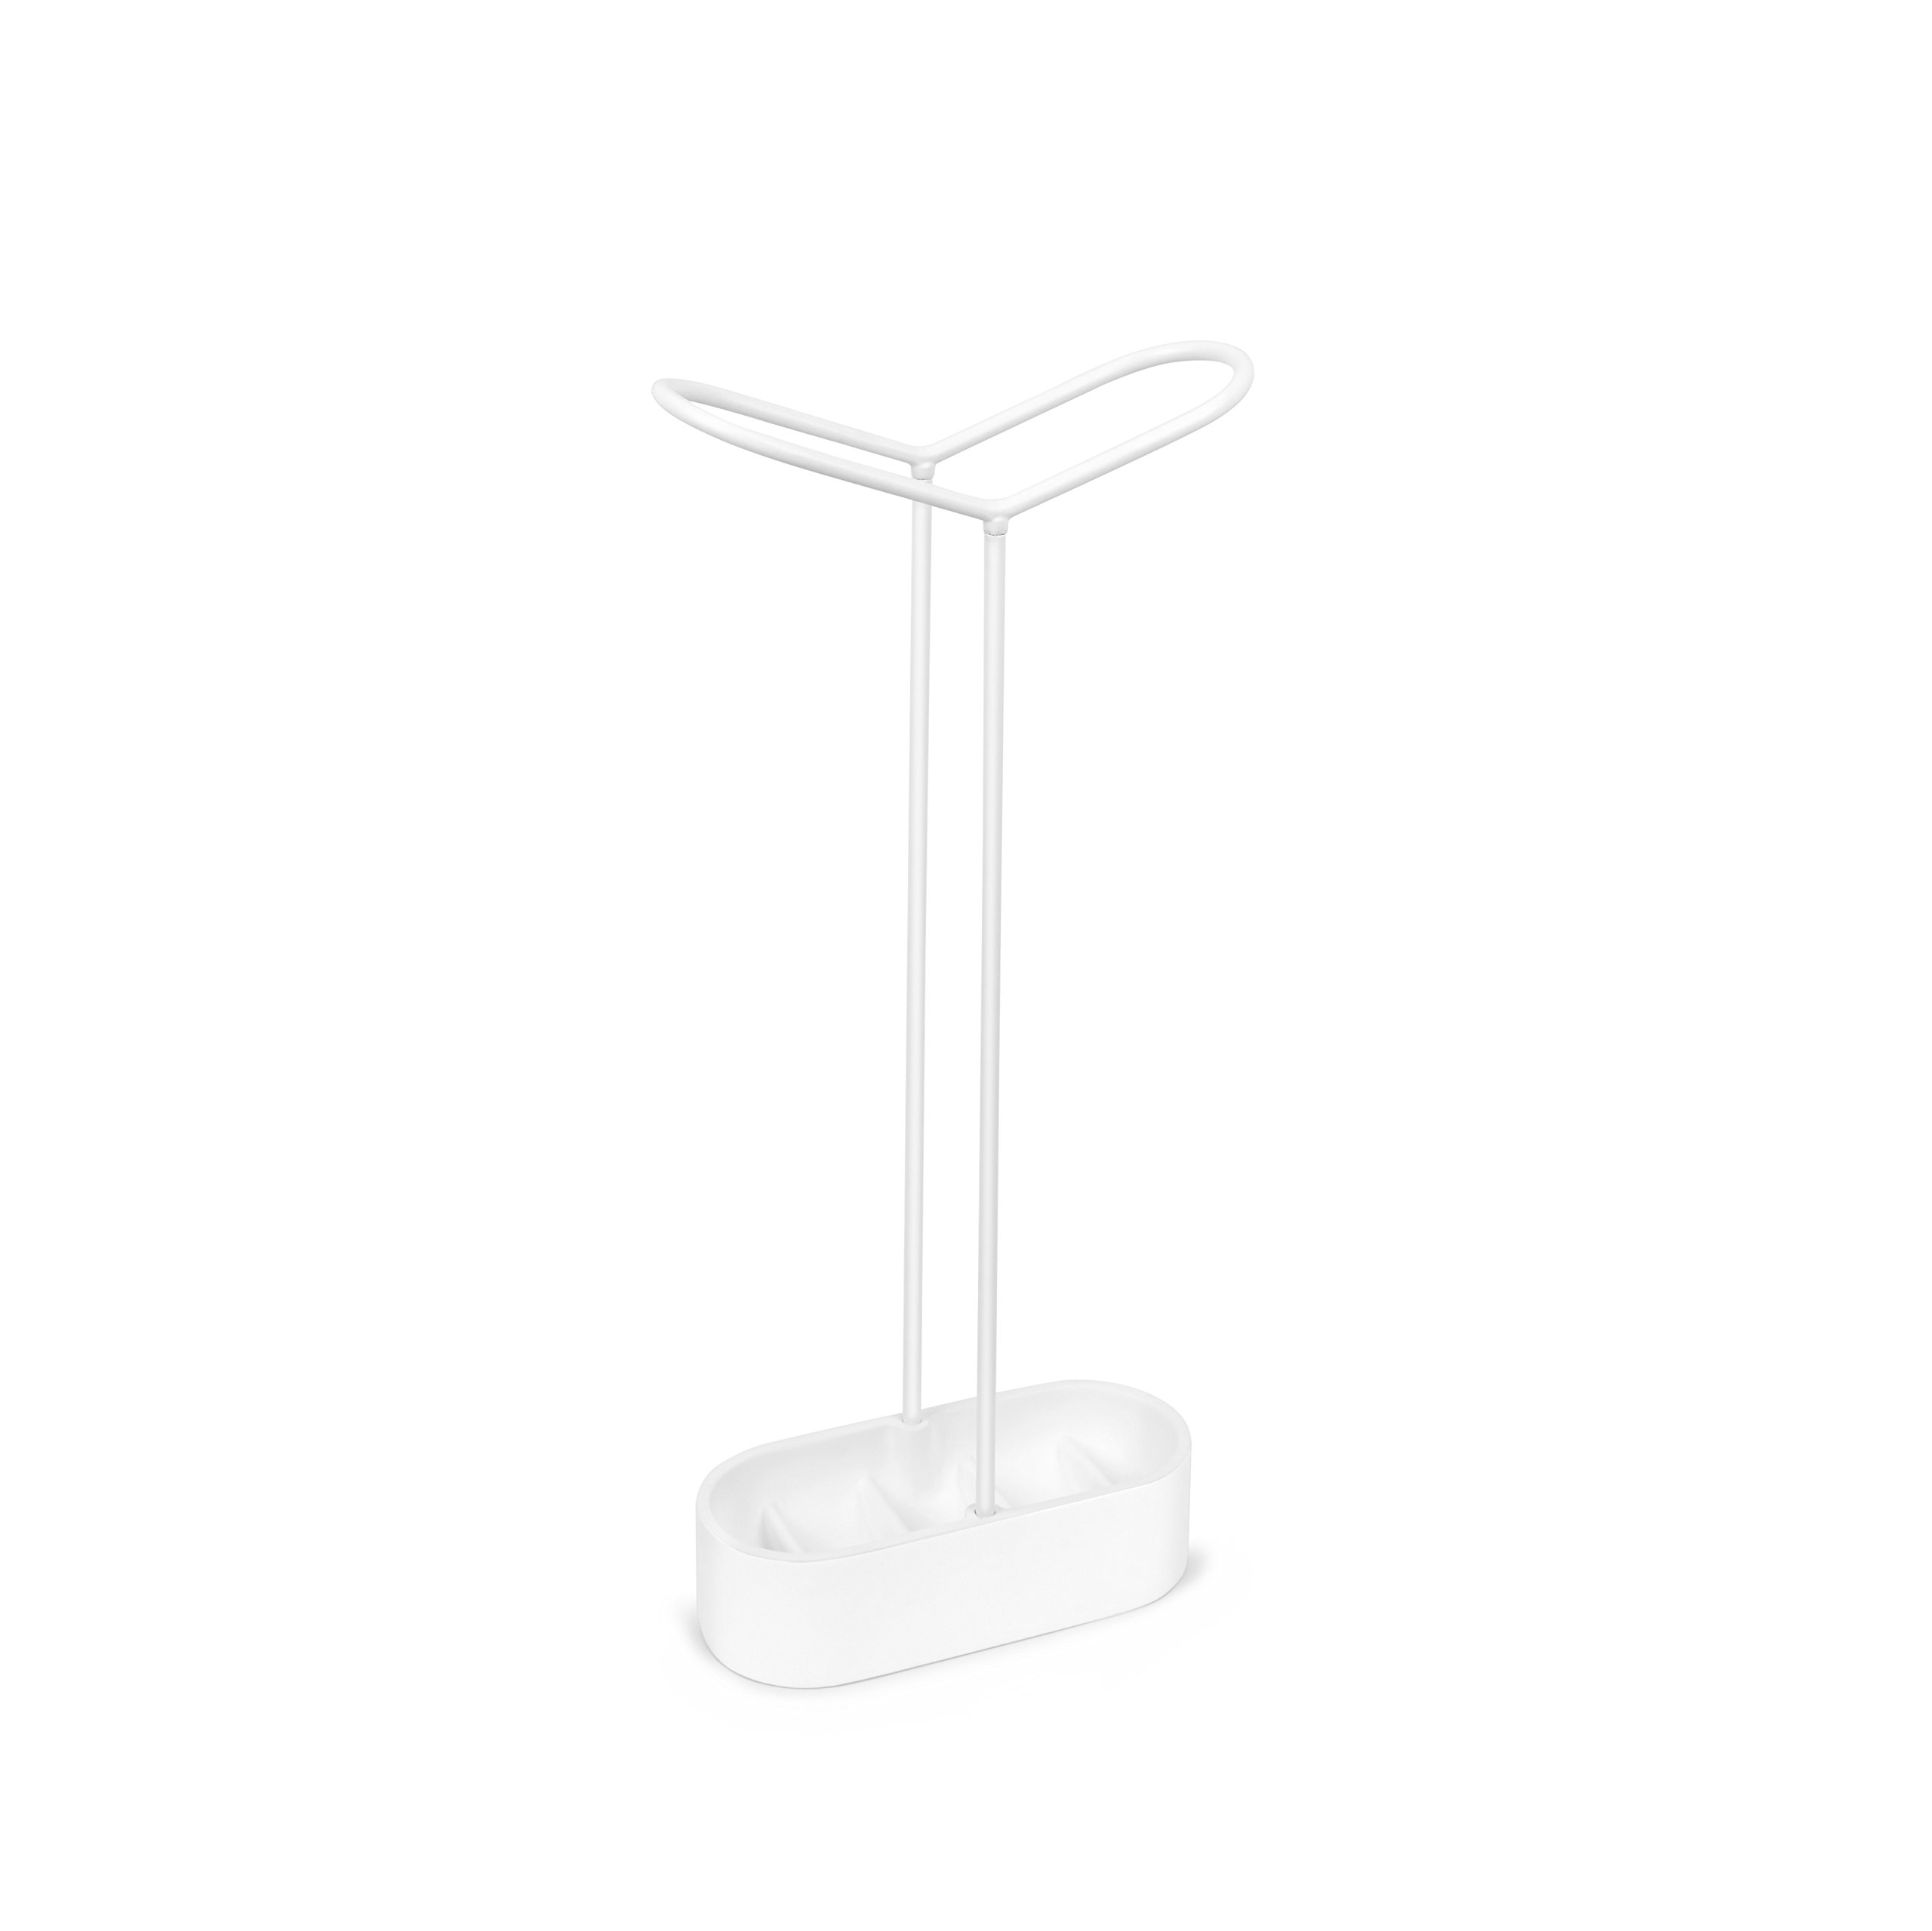 Umbra Holdit Umbrella Stand, White